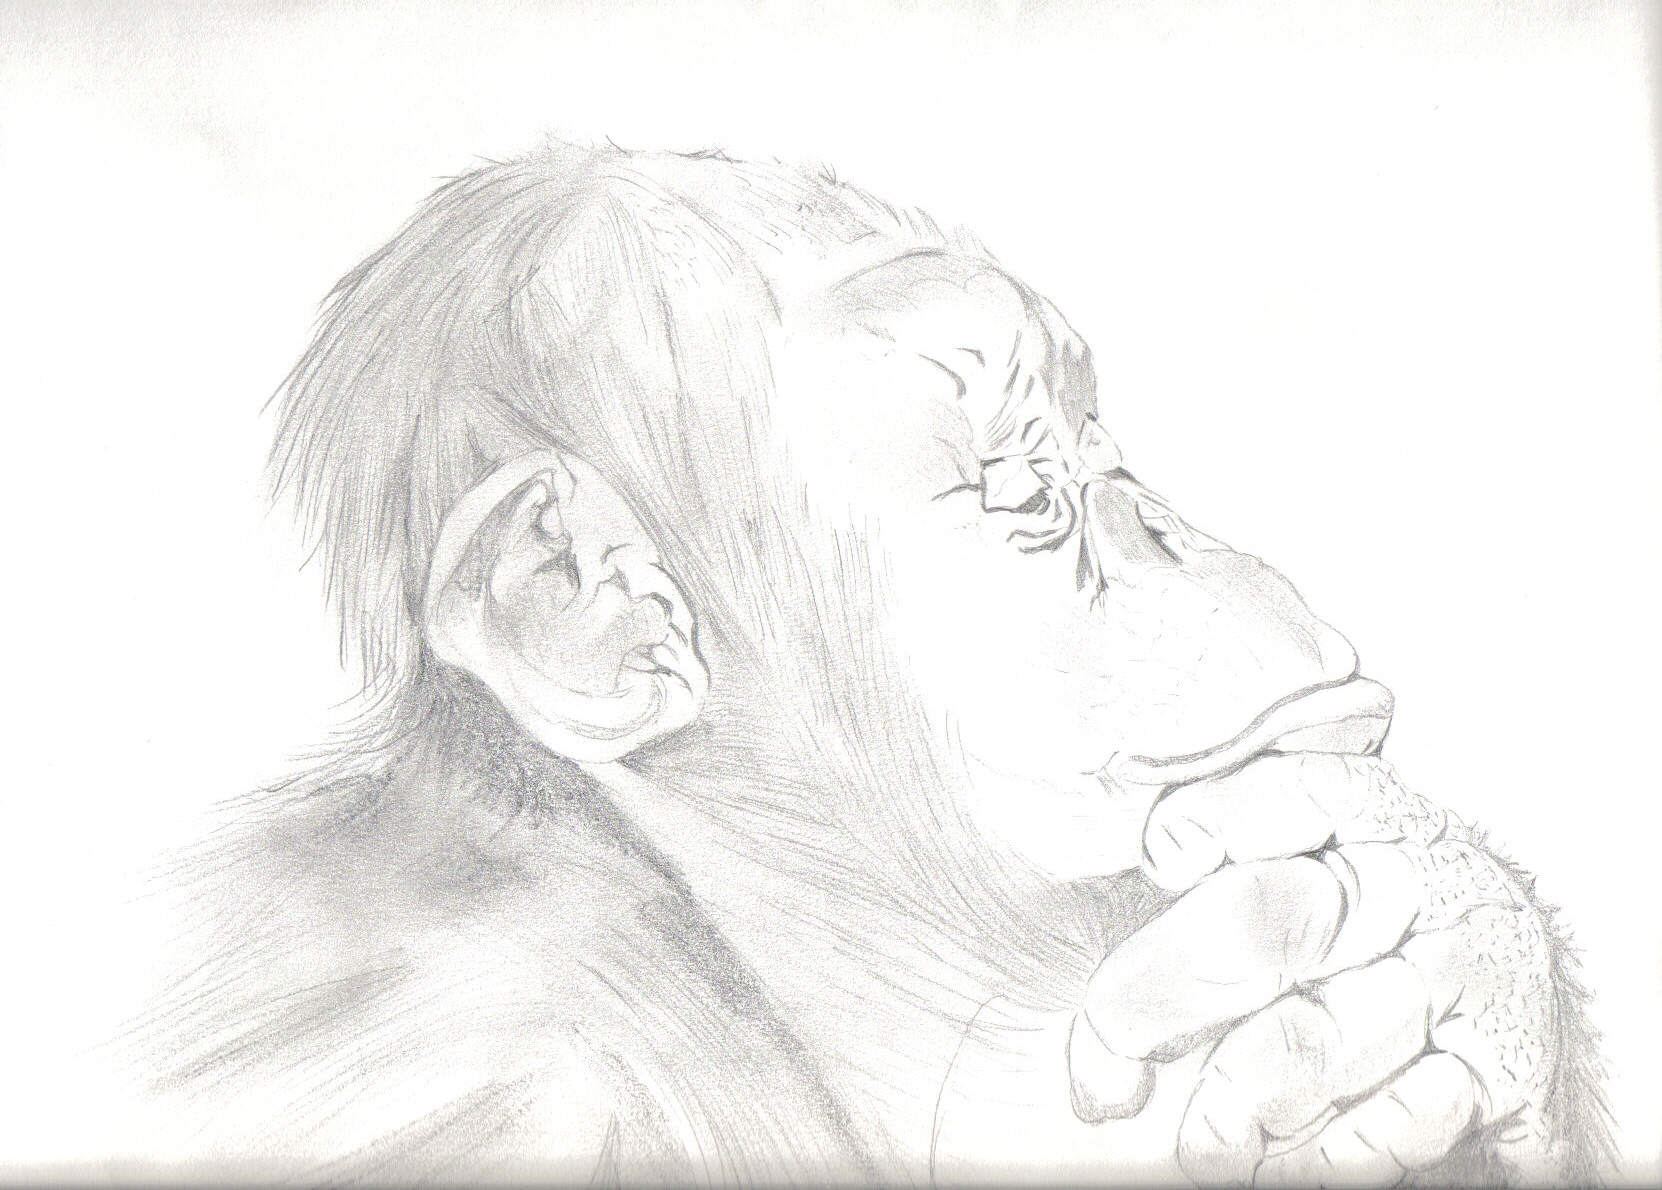 A sketch of a chimpanzee thinking